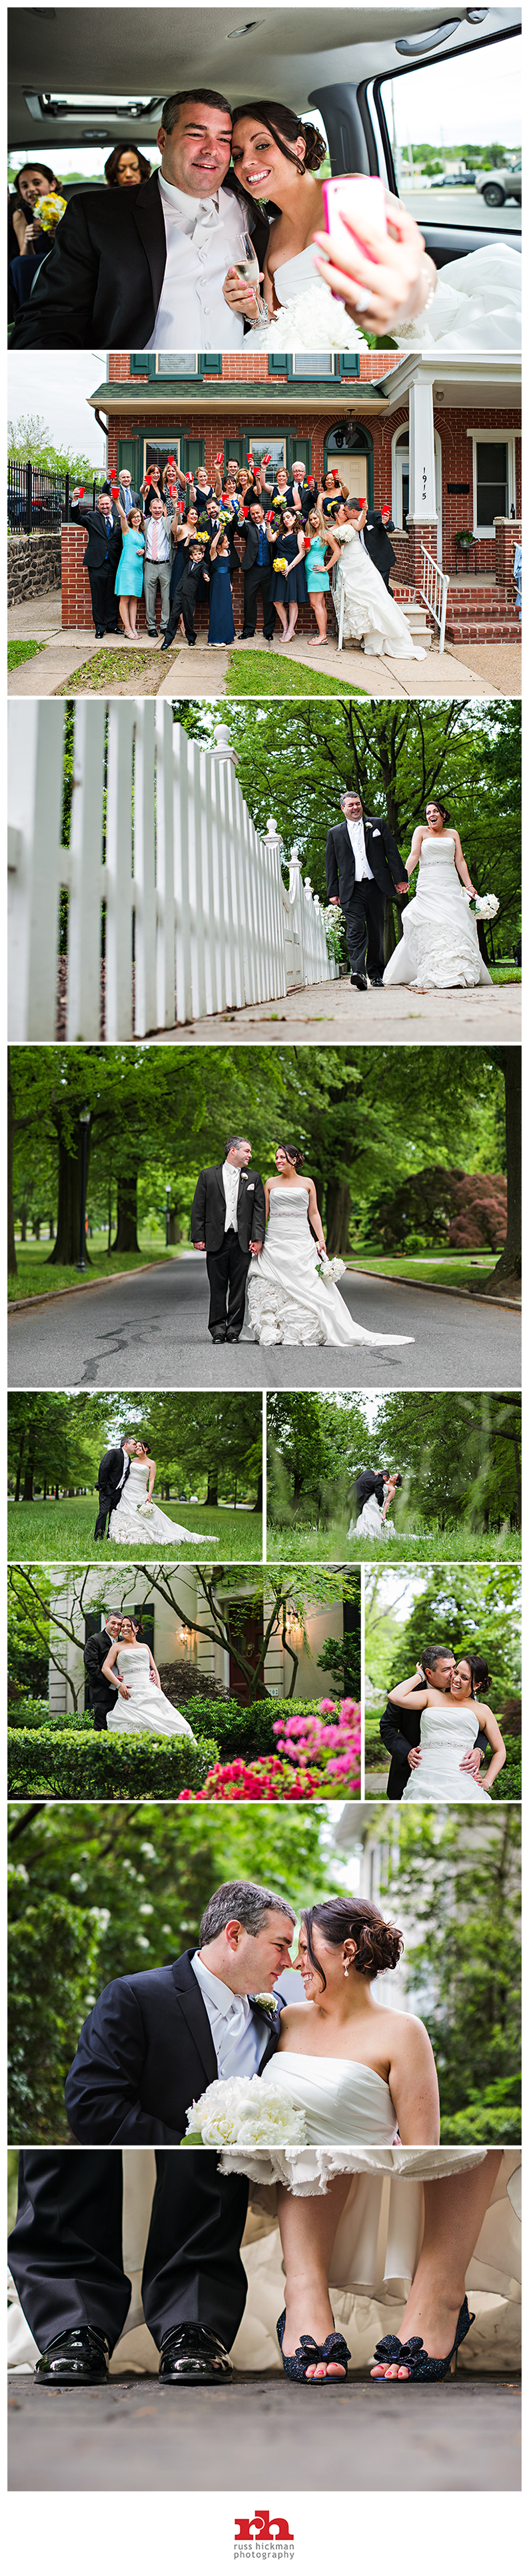 Philadelphia Wedding Photographer ABWB0007